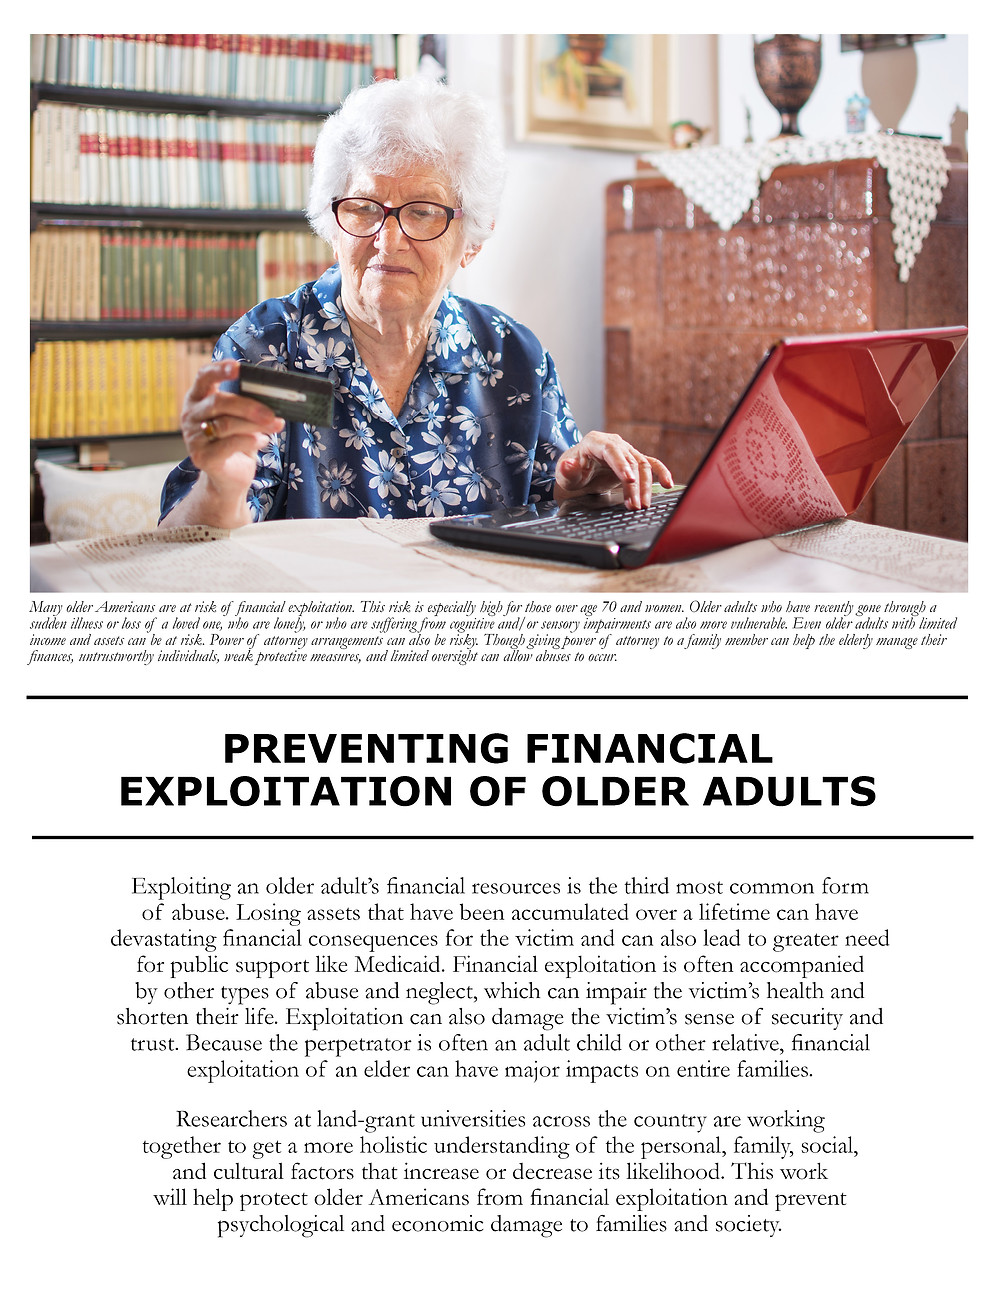 Preventing Financial Exploitation of Older Adults. Click to view/download a PDF of the Impact Statement.